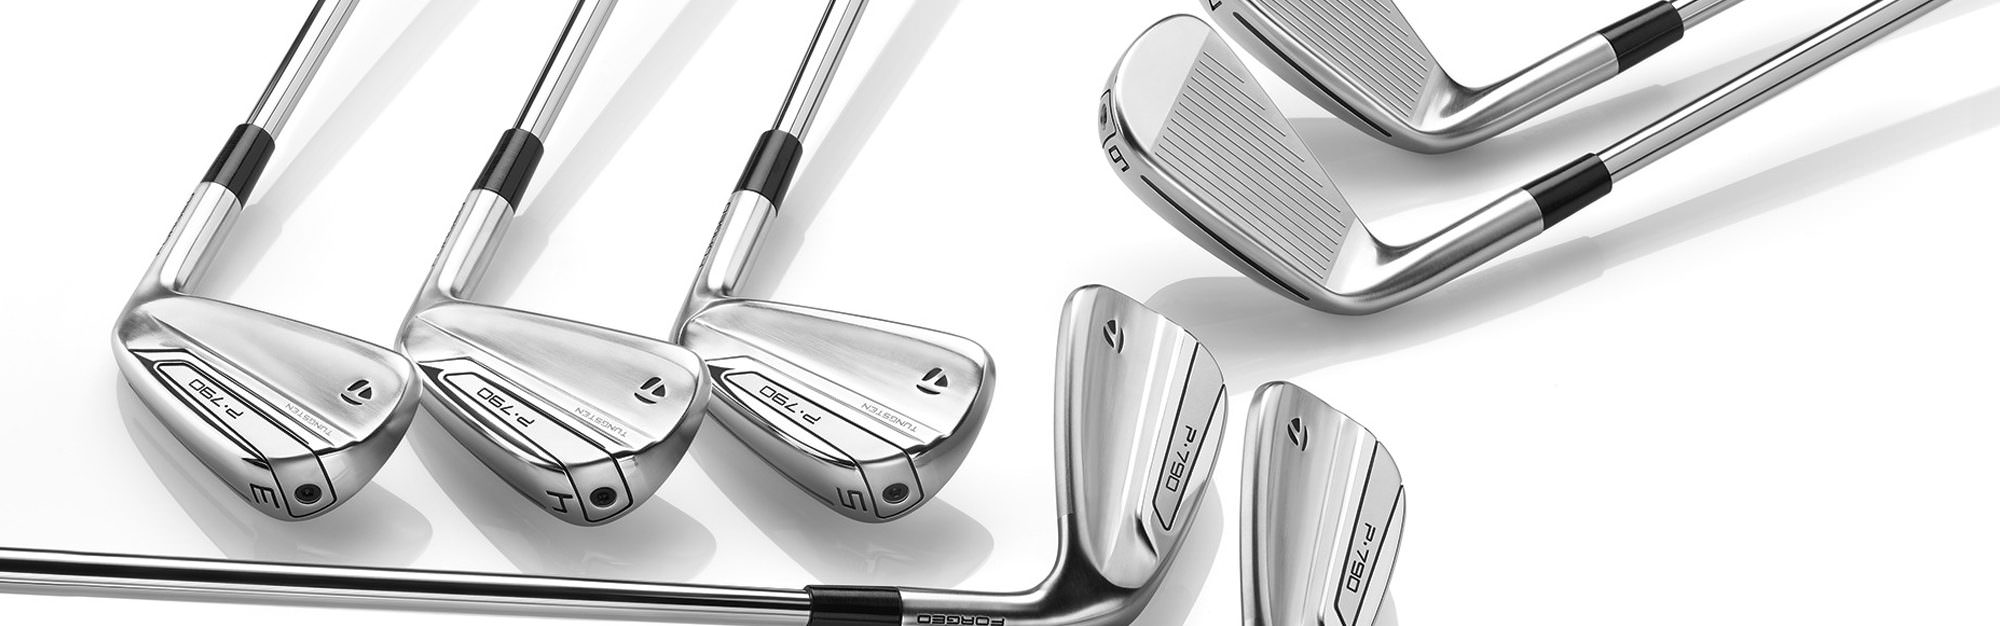 TaylorMade launch upgraded P790 irons for 2019